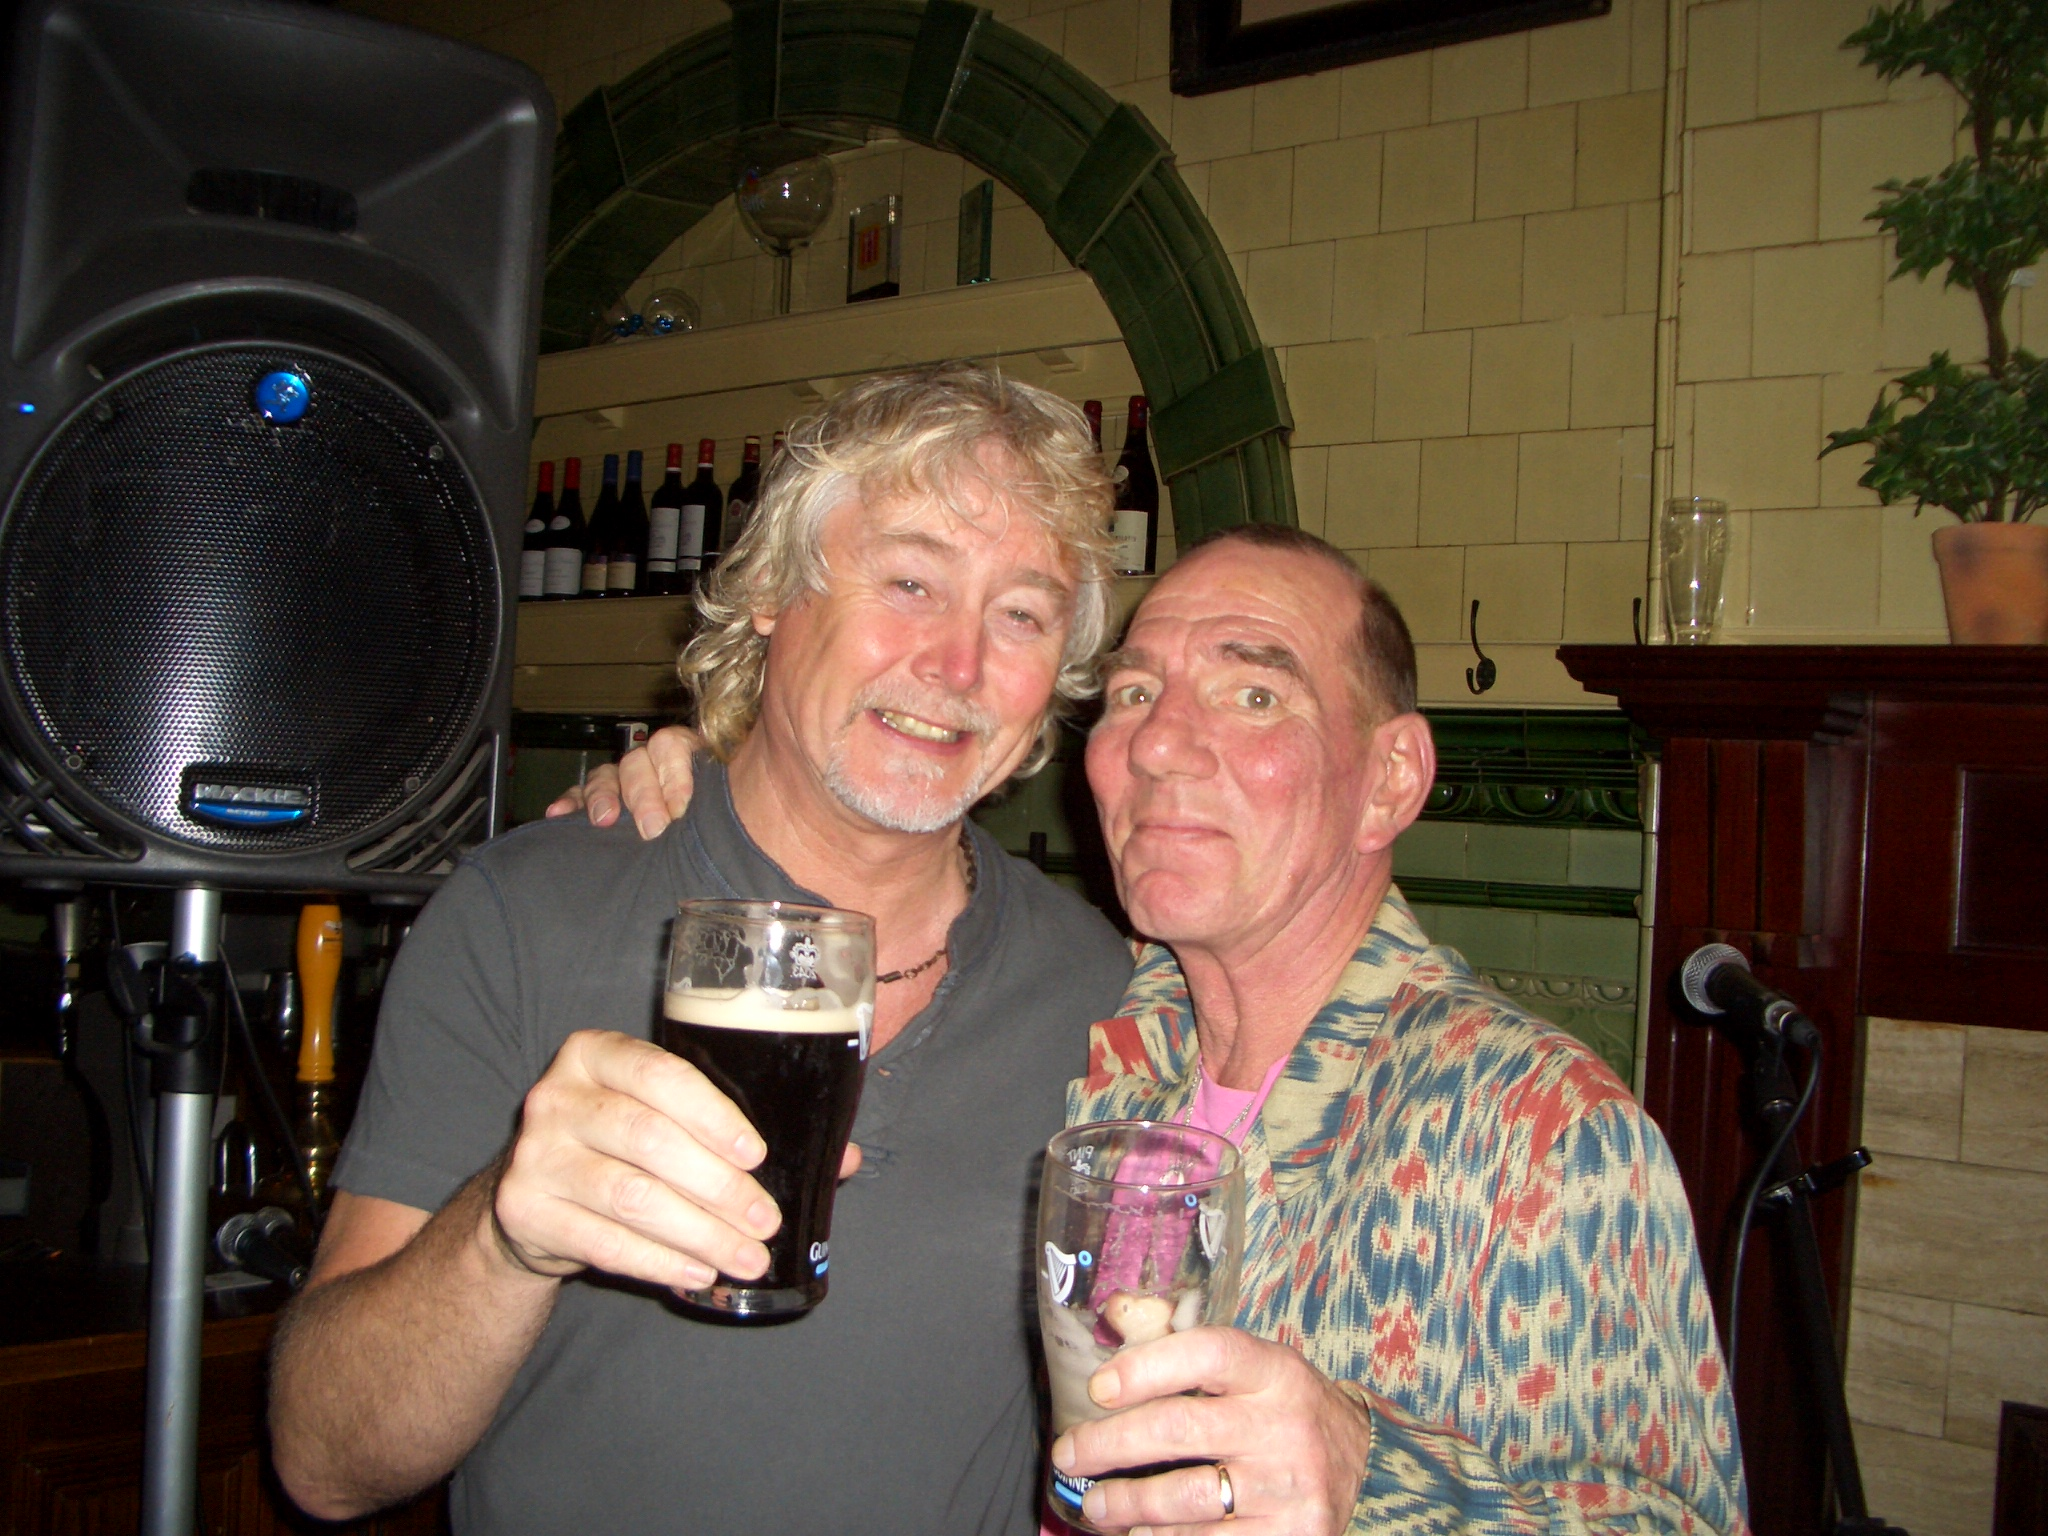 Brian with Actor Pete Postlethwaite at Mr. Thomas's Royal Exchange Gig